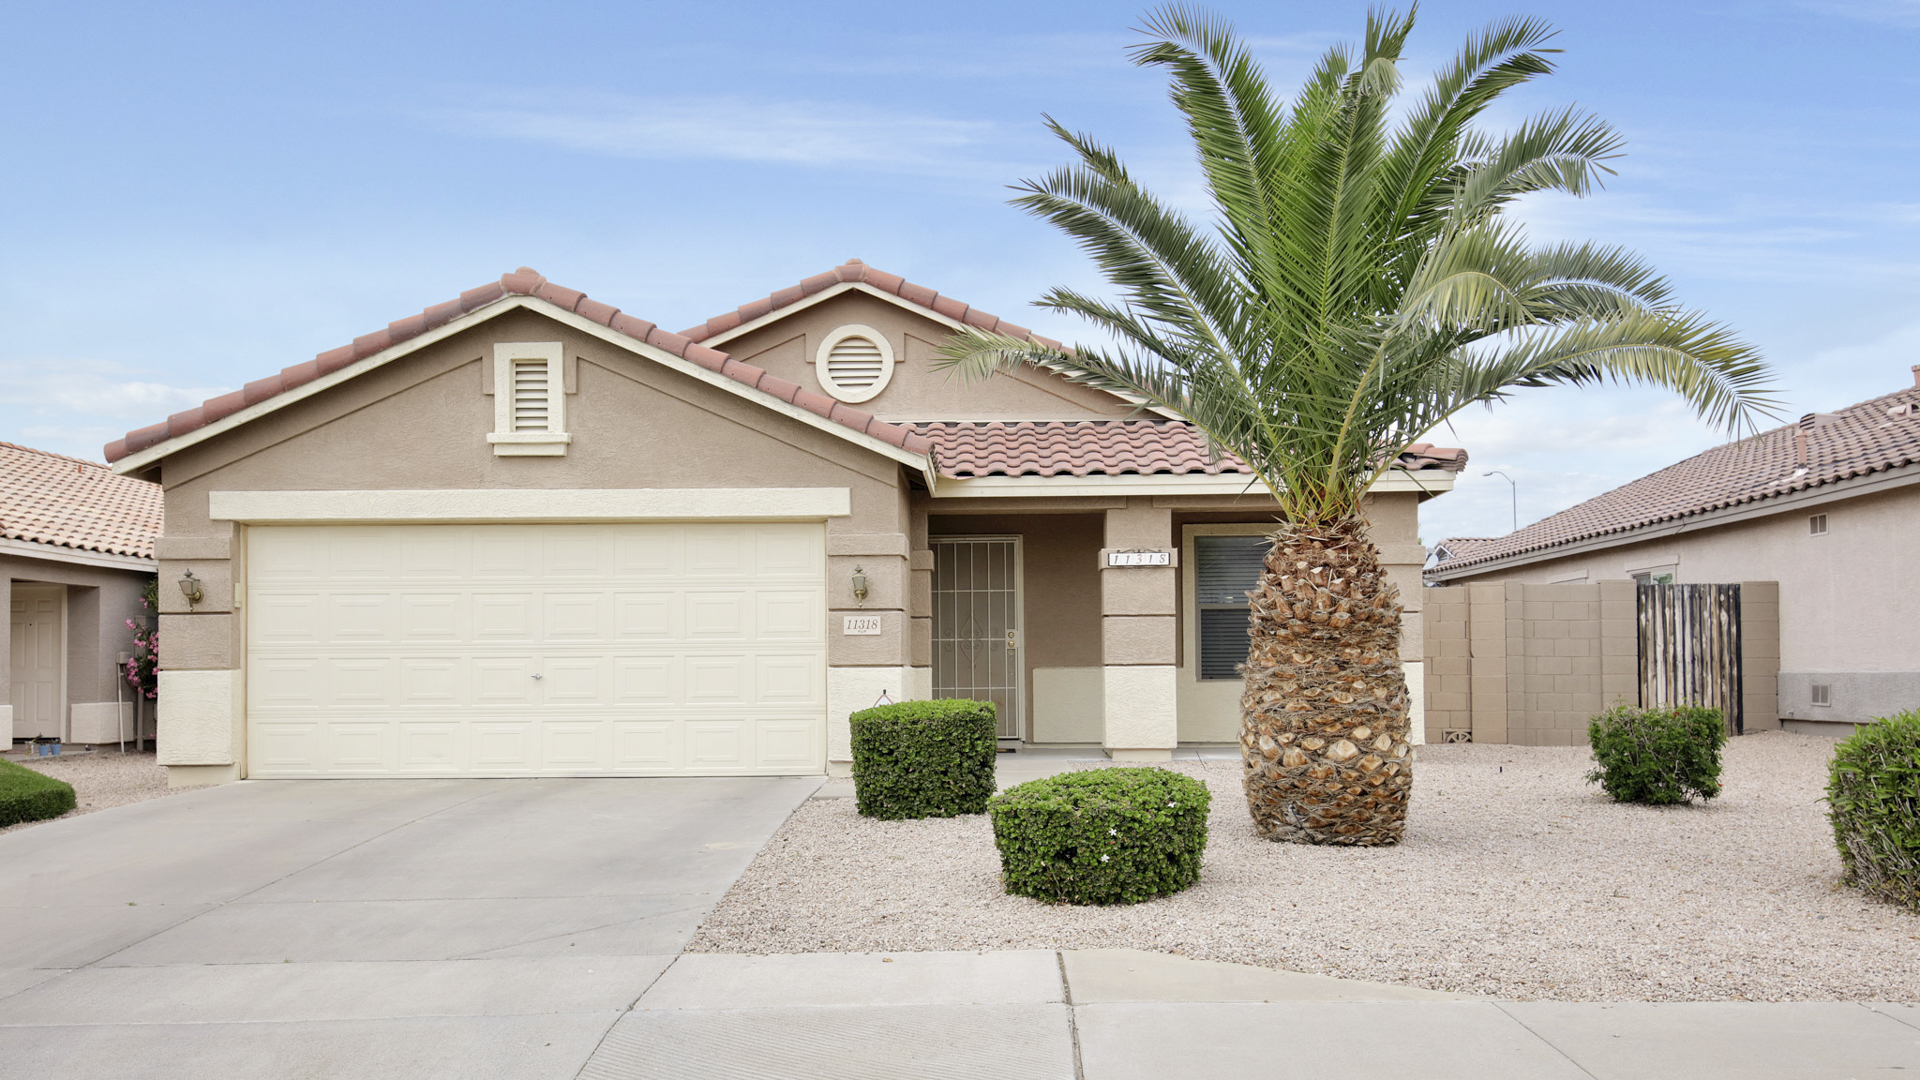 UNDER CONTRACT - 11318 E Quintana Ave, Mesa, AZ 85212